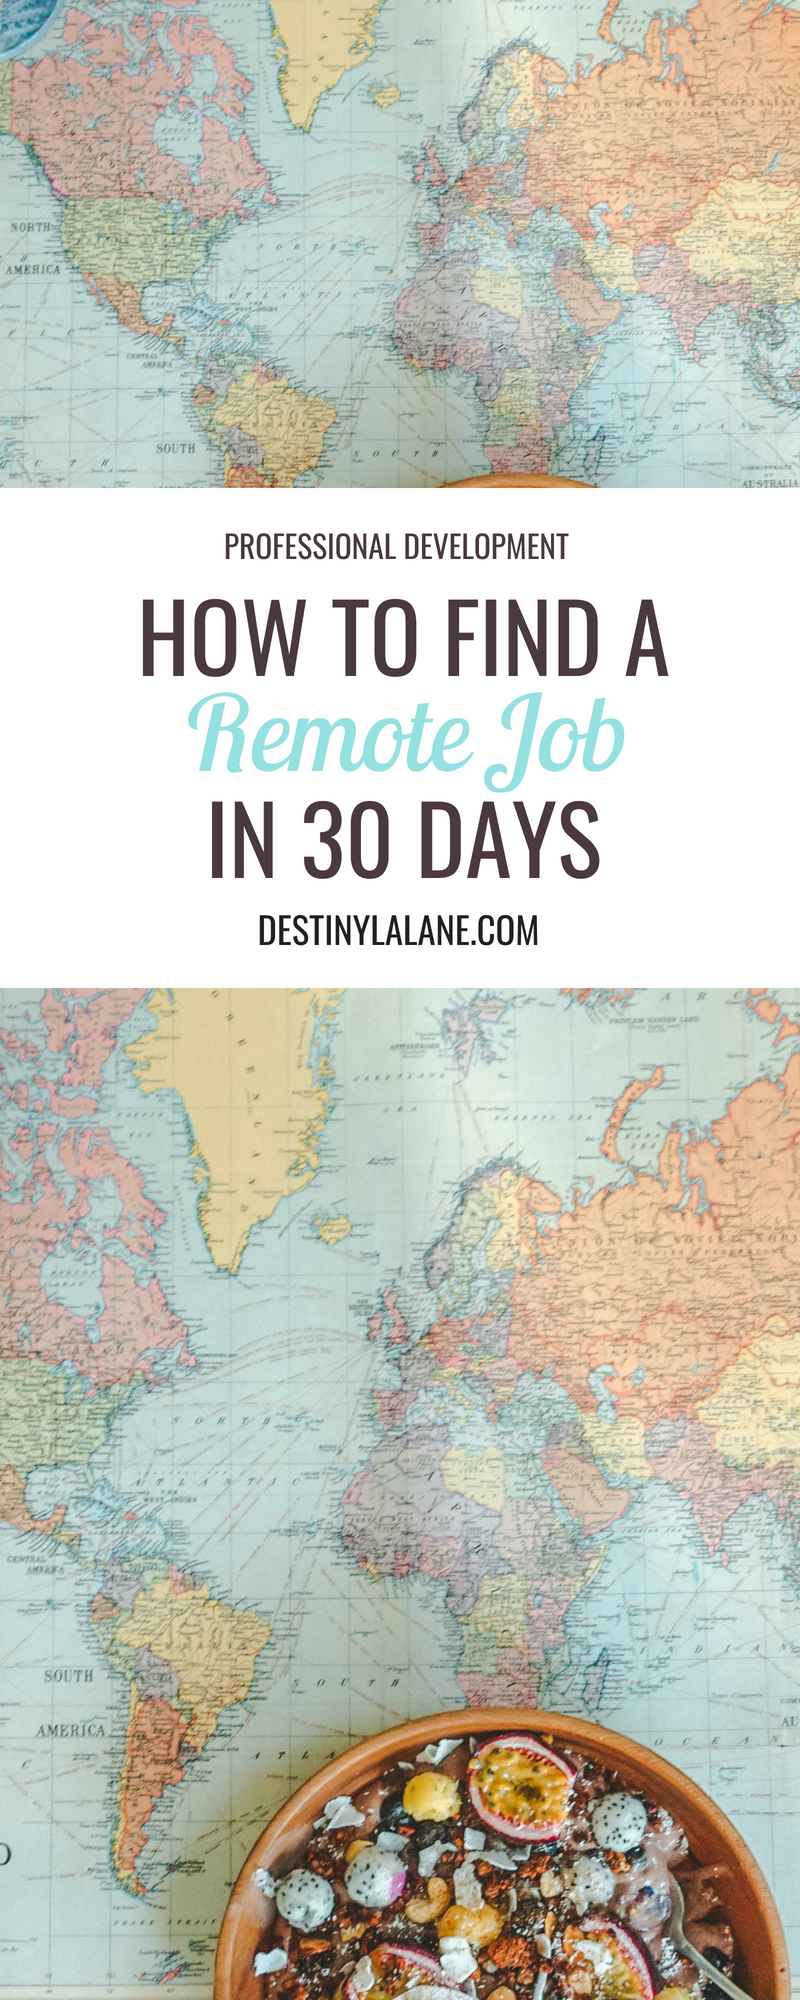 How to find a remote job in 30 days   Business ideas   Pinterest ...